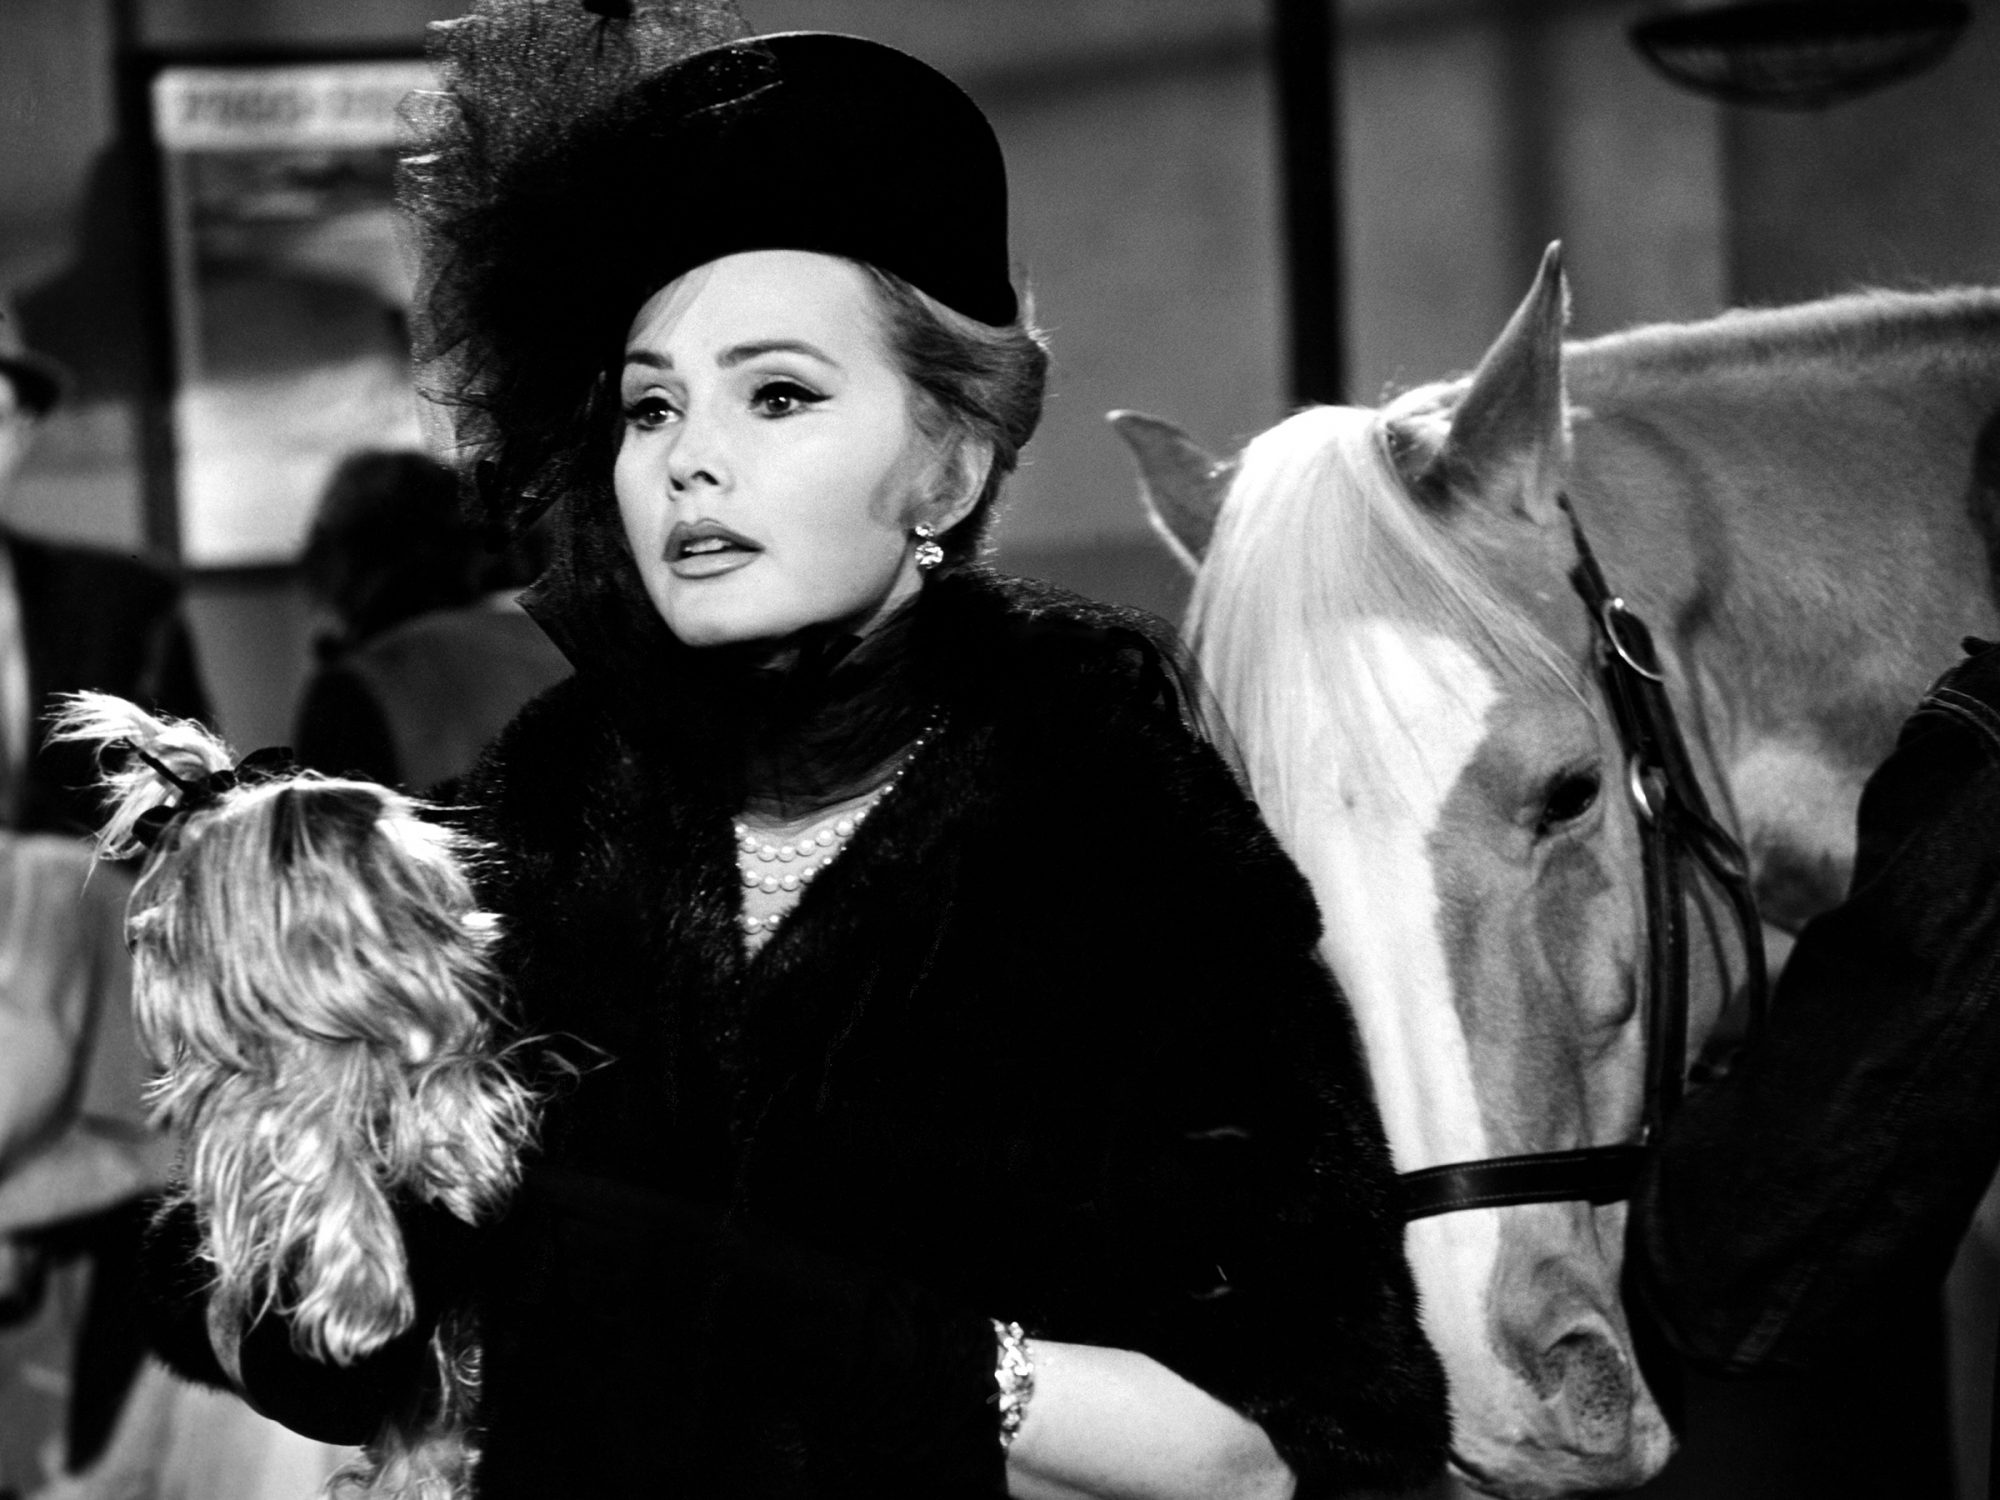 MISTER ED, Zsa Zsa Gabor, 'Zsa Zsa', (Season 2, aired January 28, 1962), 1961-66